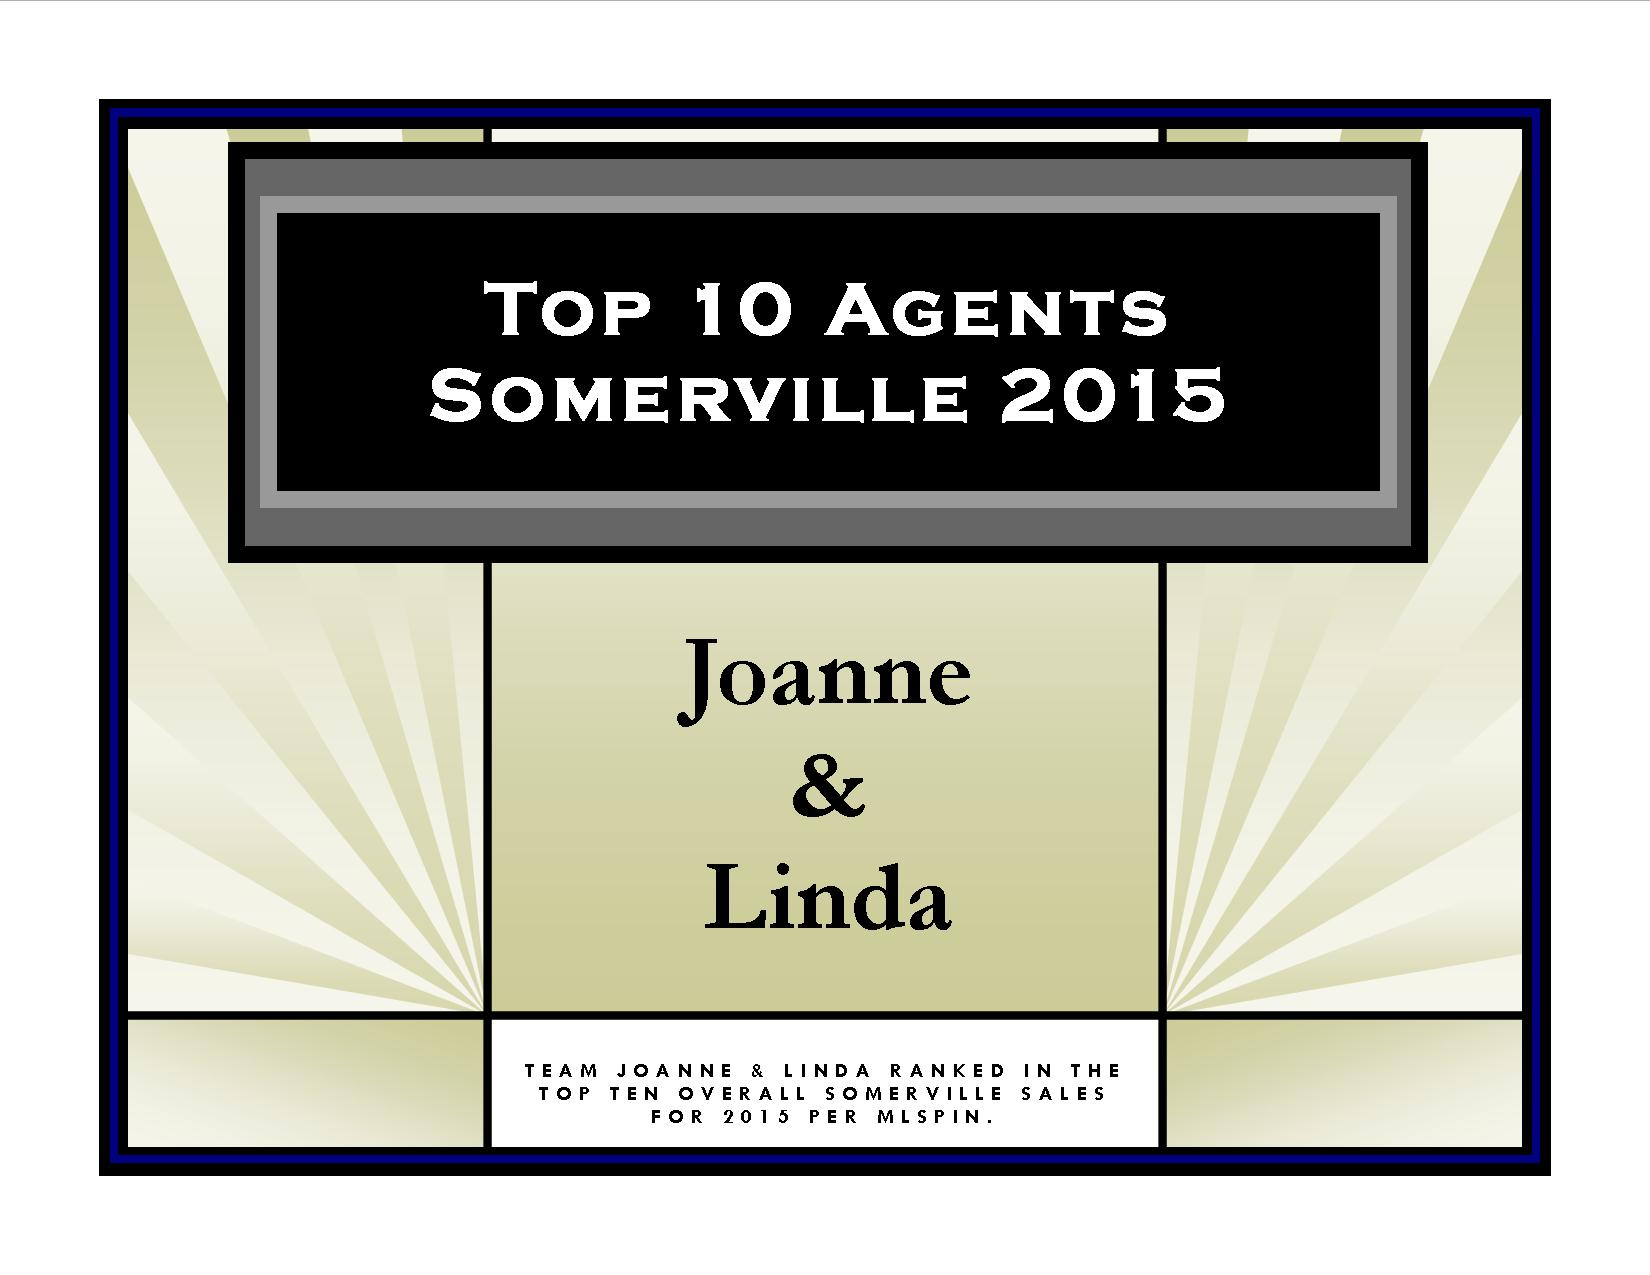 Top 10 Agents Somerville 2015